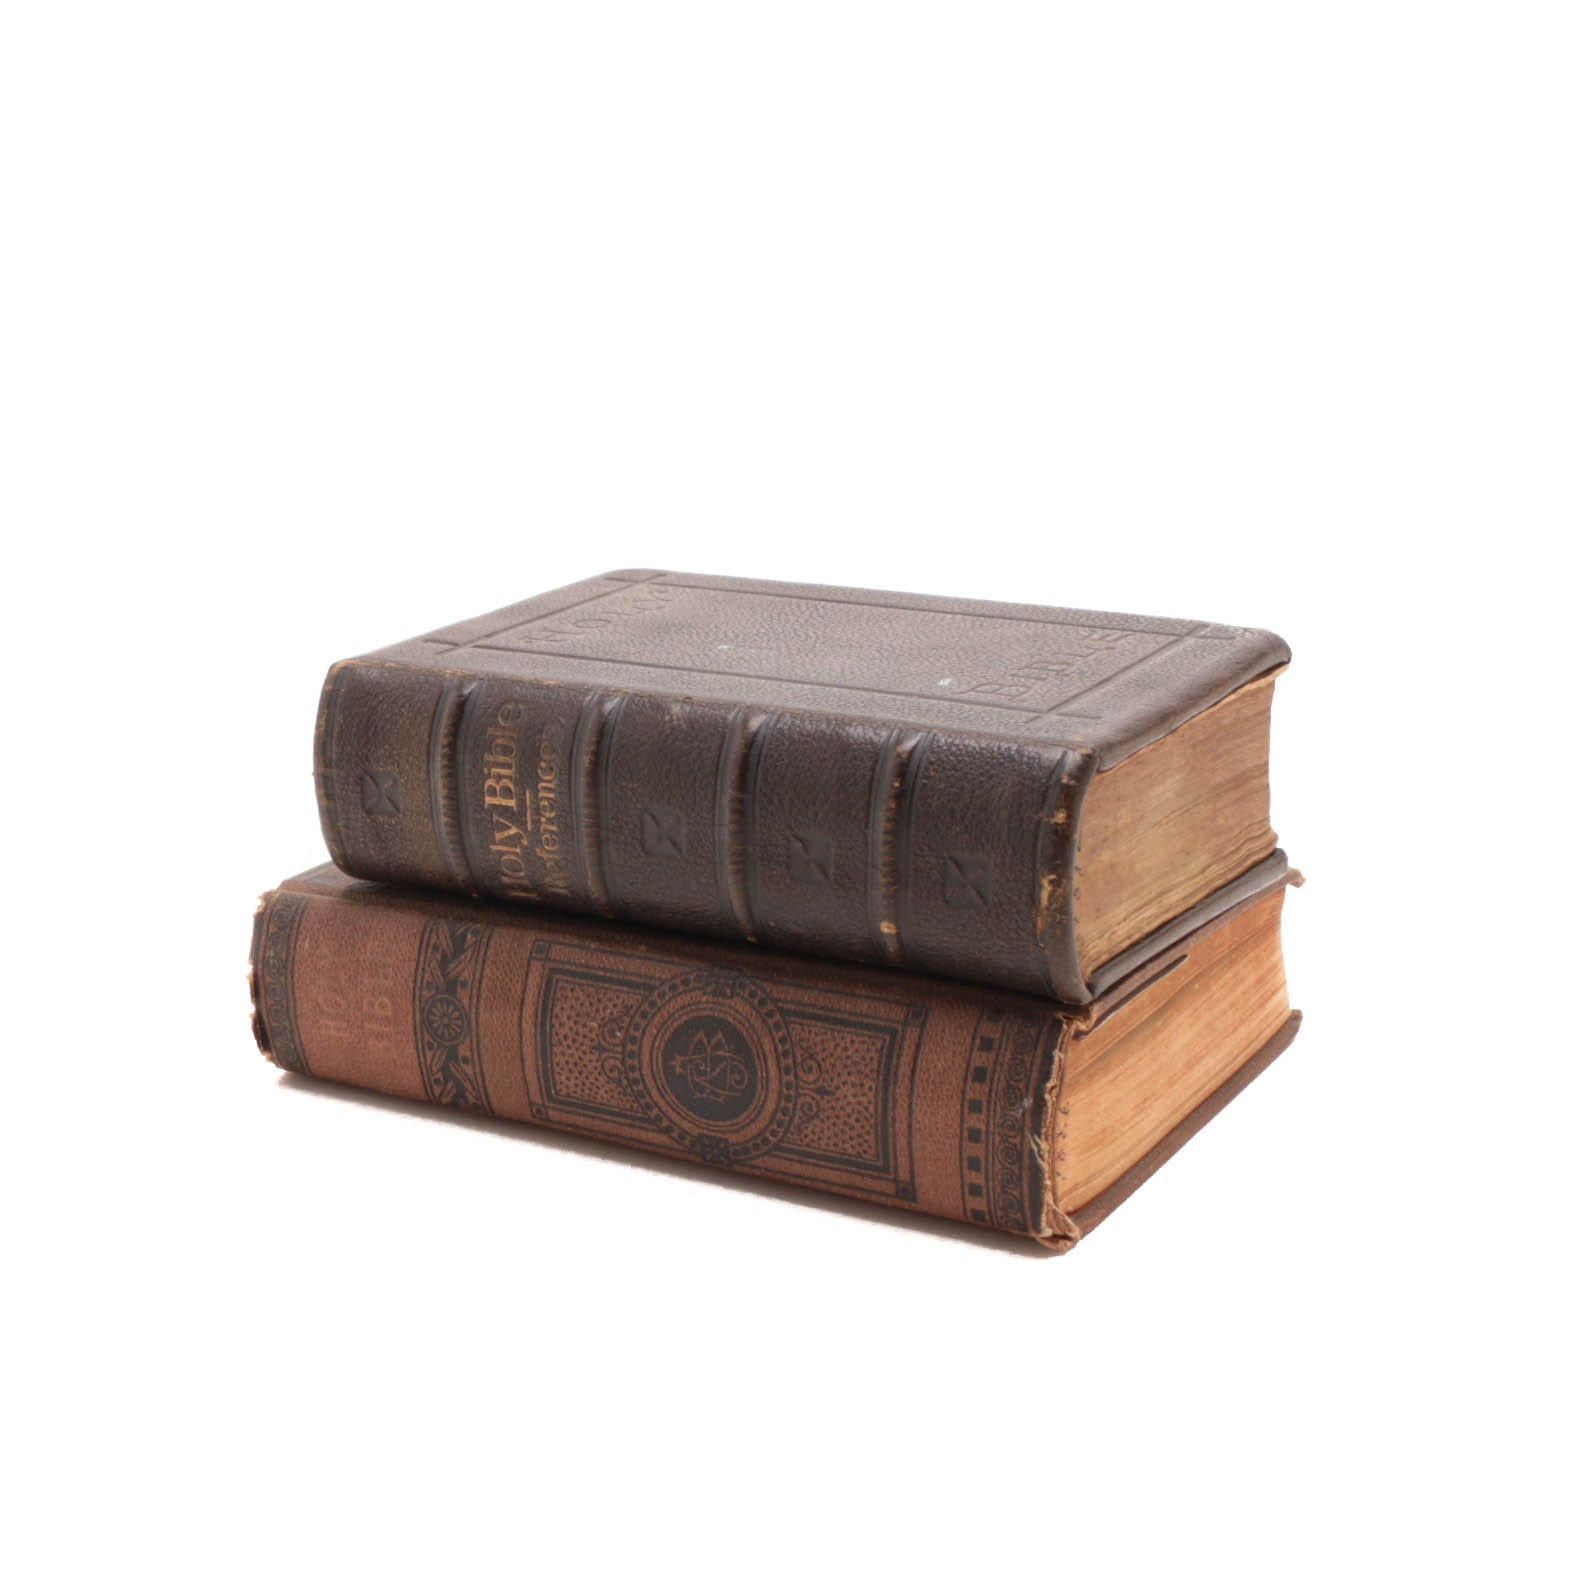 Two Antique Holy Bibles